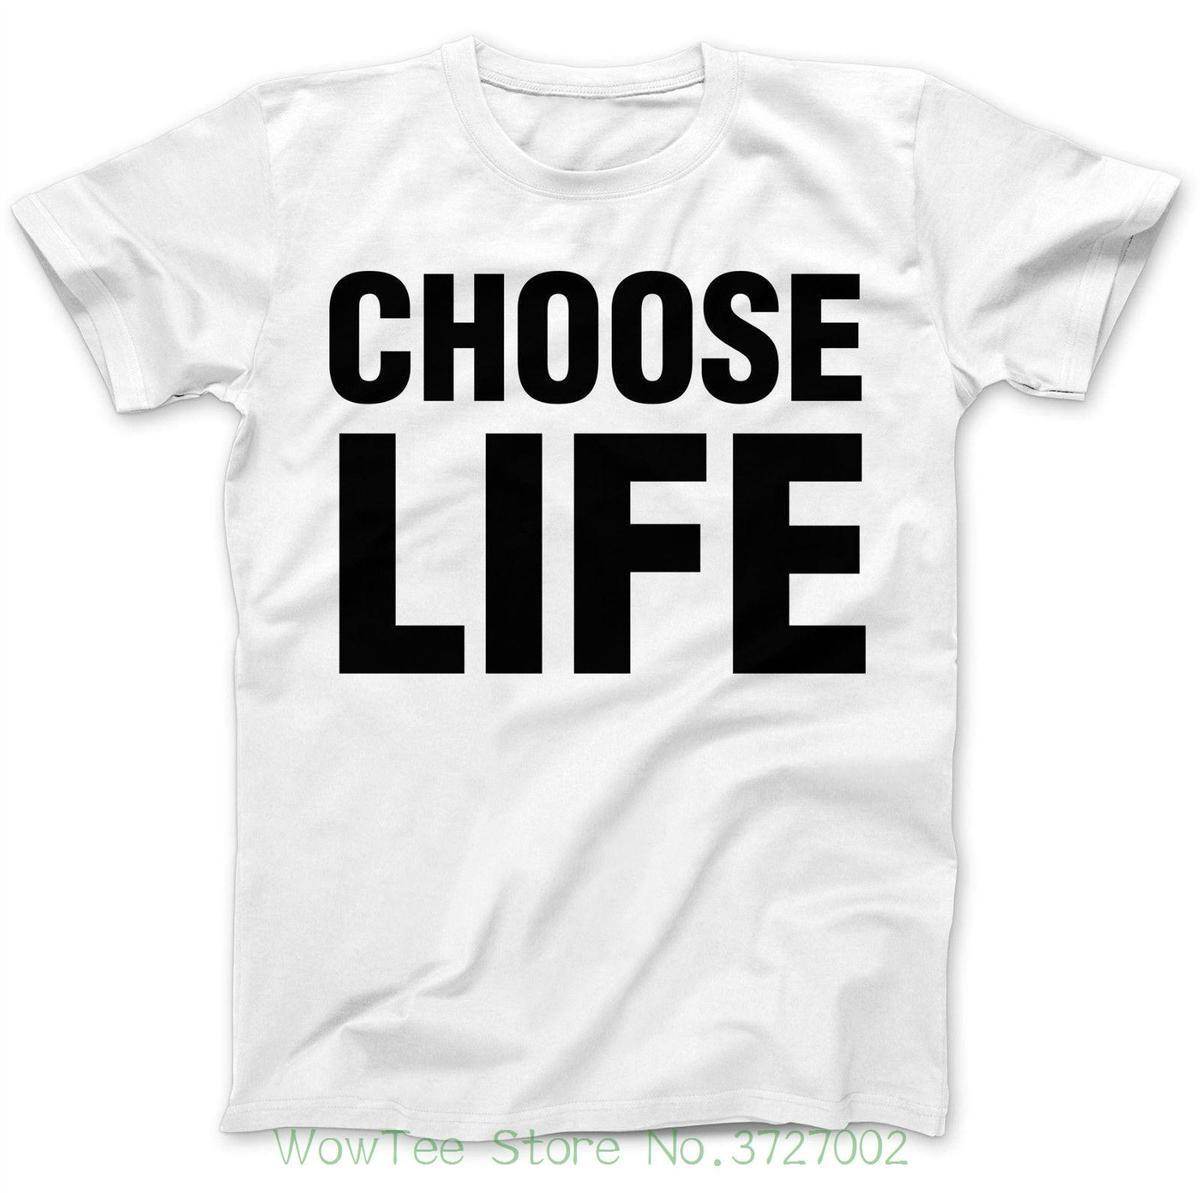 51f3499d Choose Life 80's Iconic Music Costume Party Dress Up Fun Retro Wham T-shirt  T Shirt Summer Famous Clothing